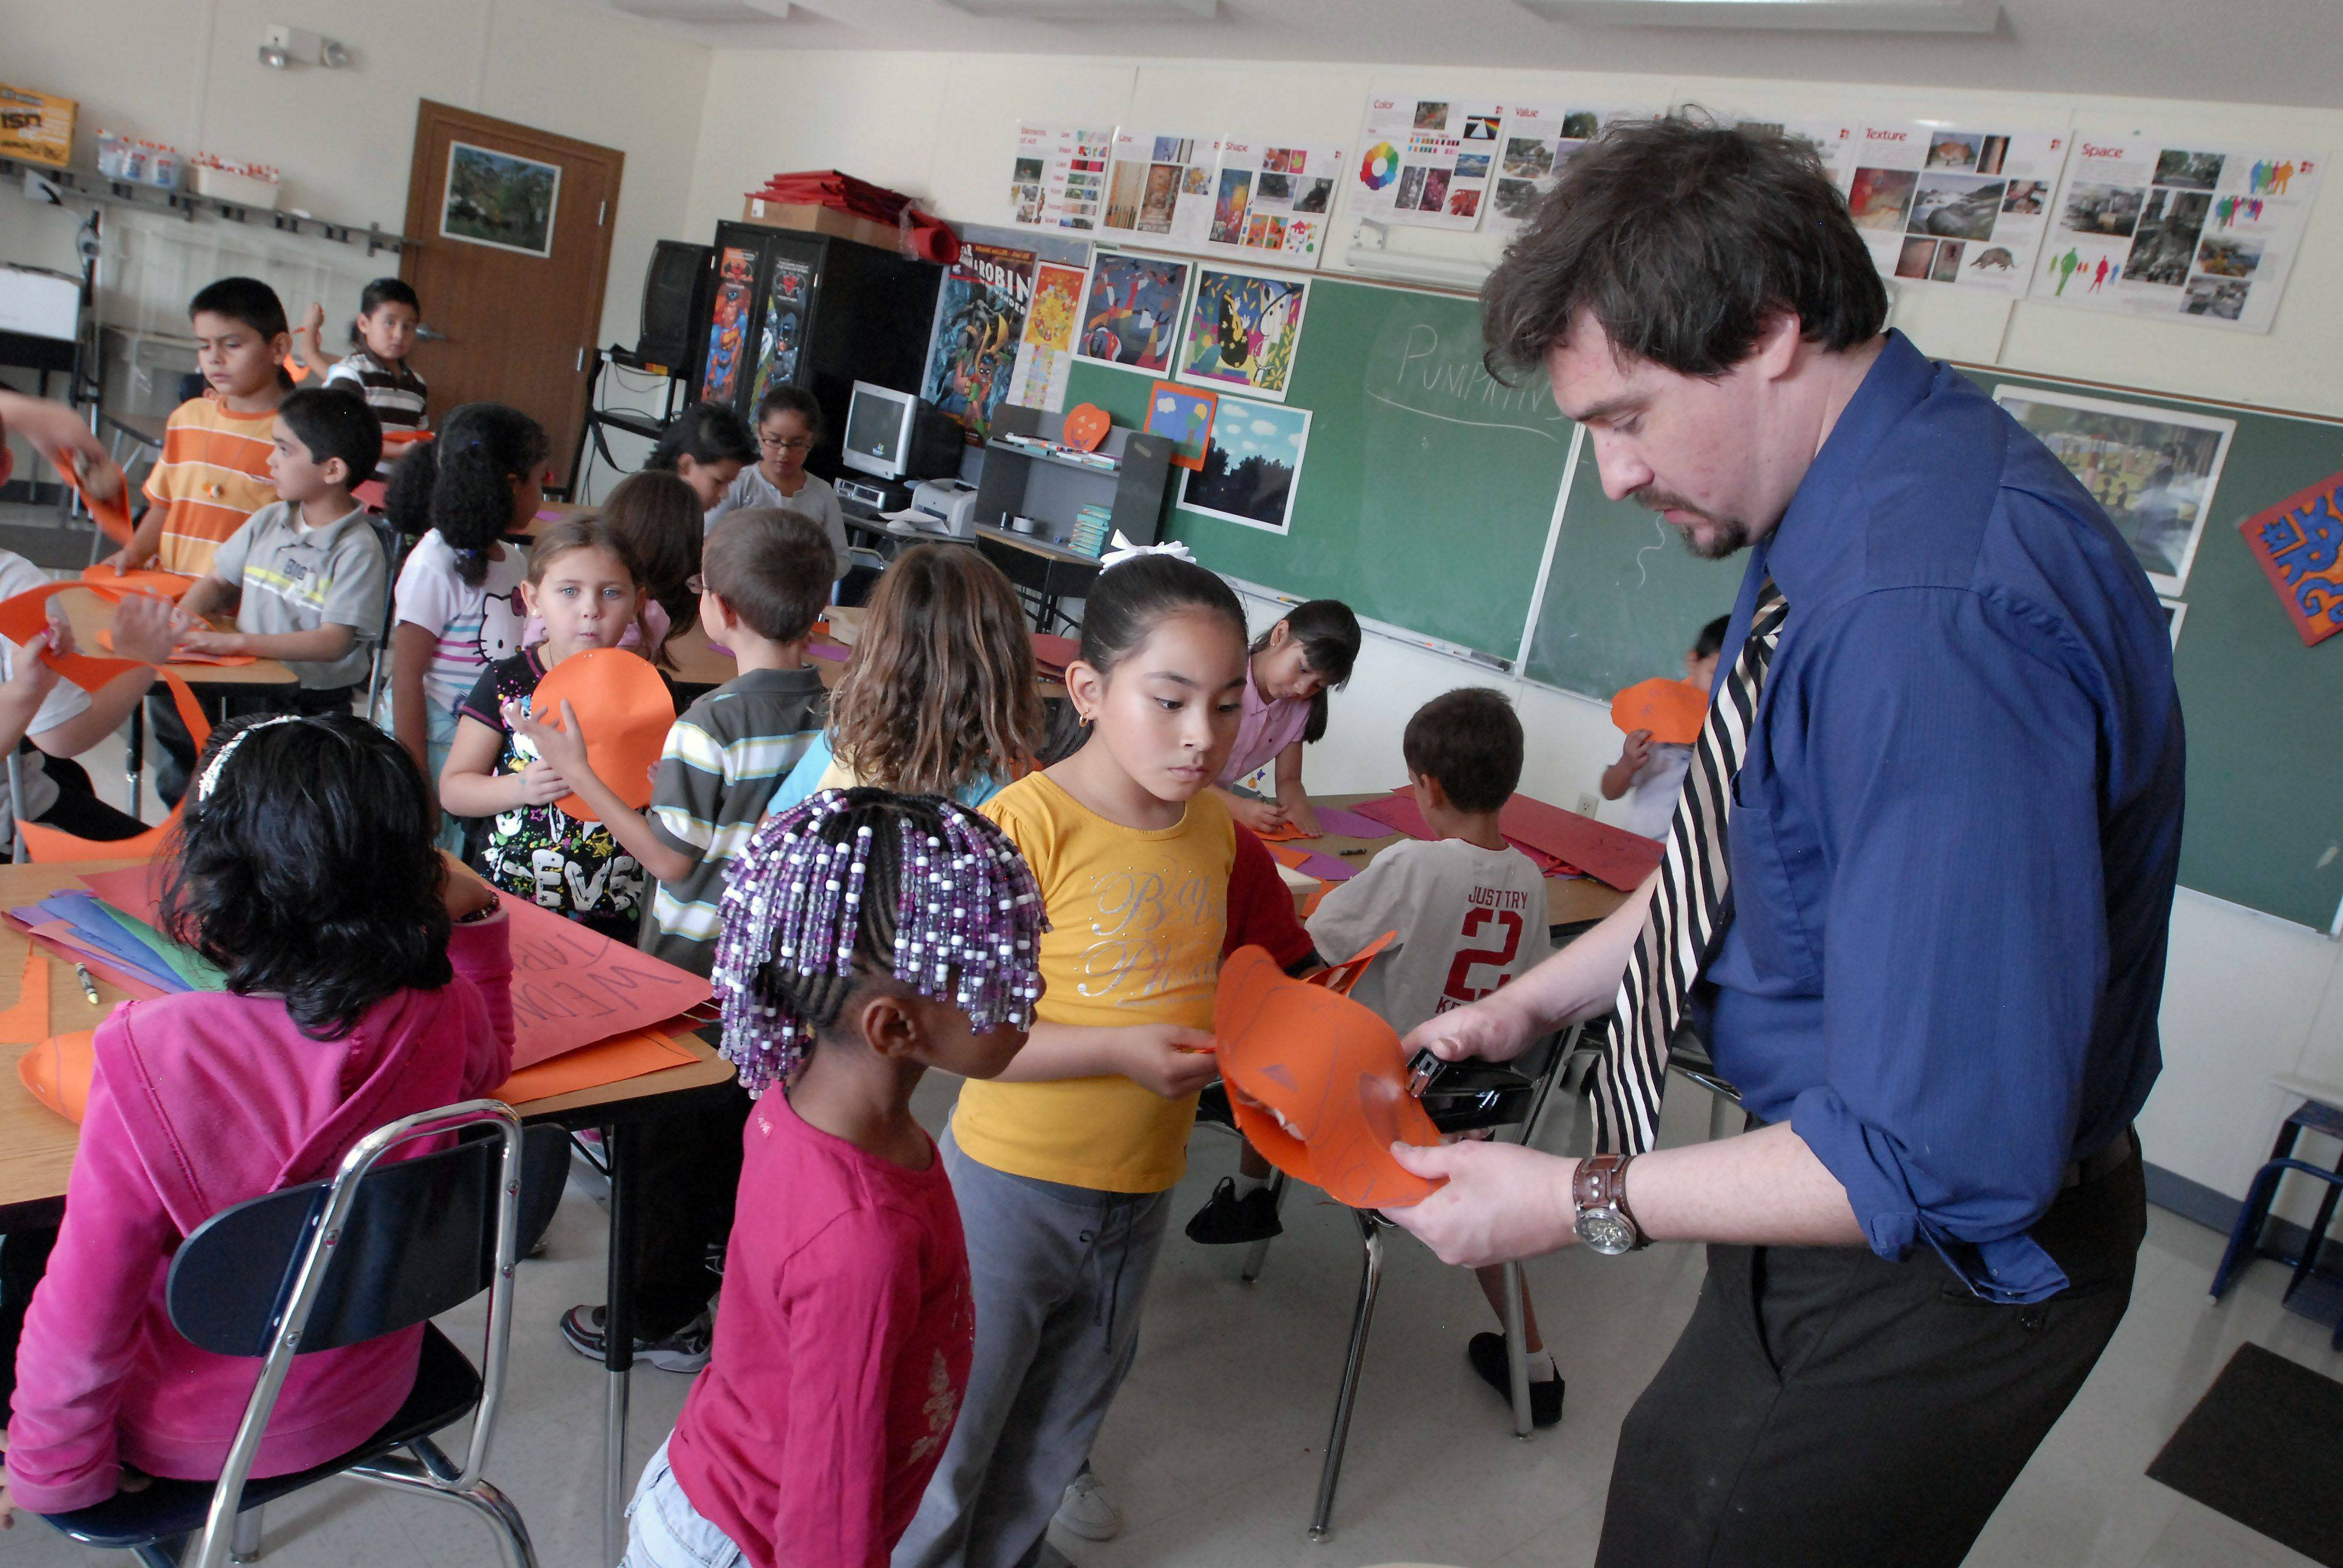 Students vie for attention from art teacher Tom Graholski at Lincoln Elementary School in Hoffman Estates. The school is part of Elgin Area School District U-46, where school officials have been forced to make up for millions of dollars owed by the state.